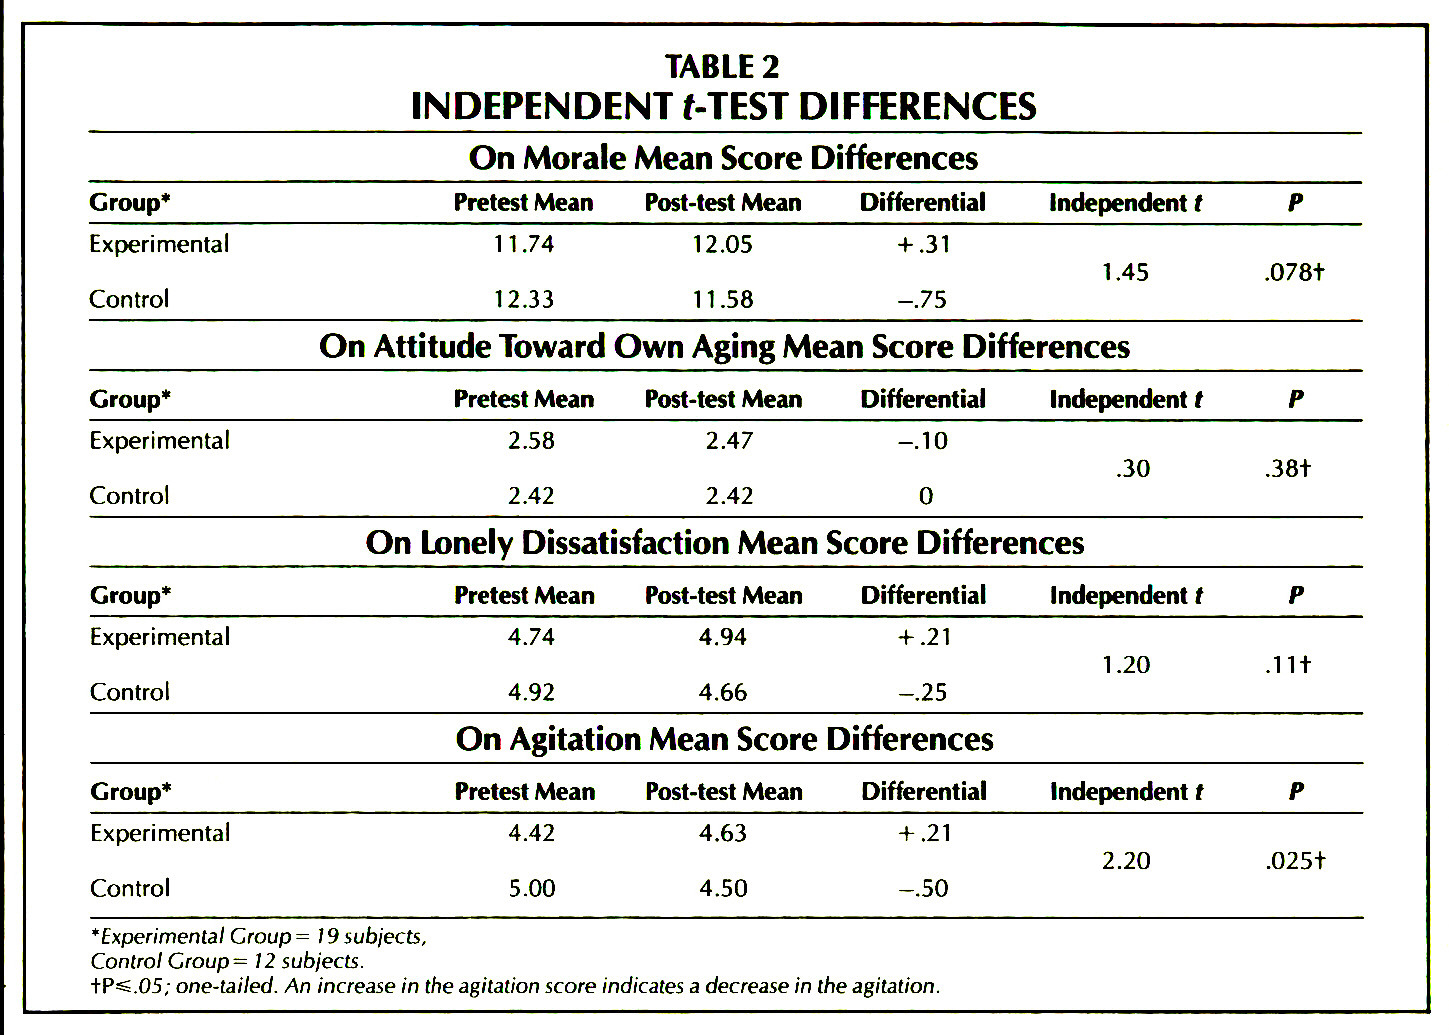 TABLE 2INDEPENDENT t-TEST DIFFERENCES